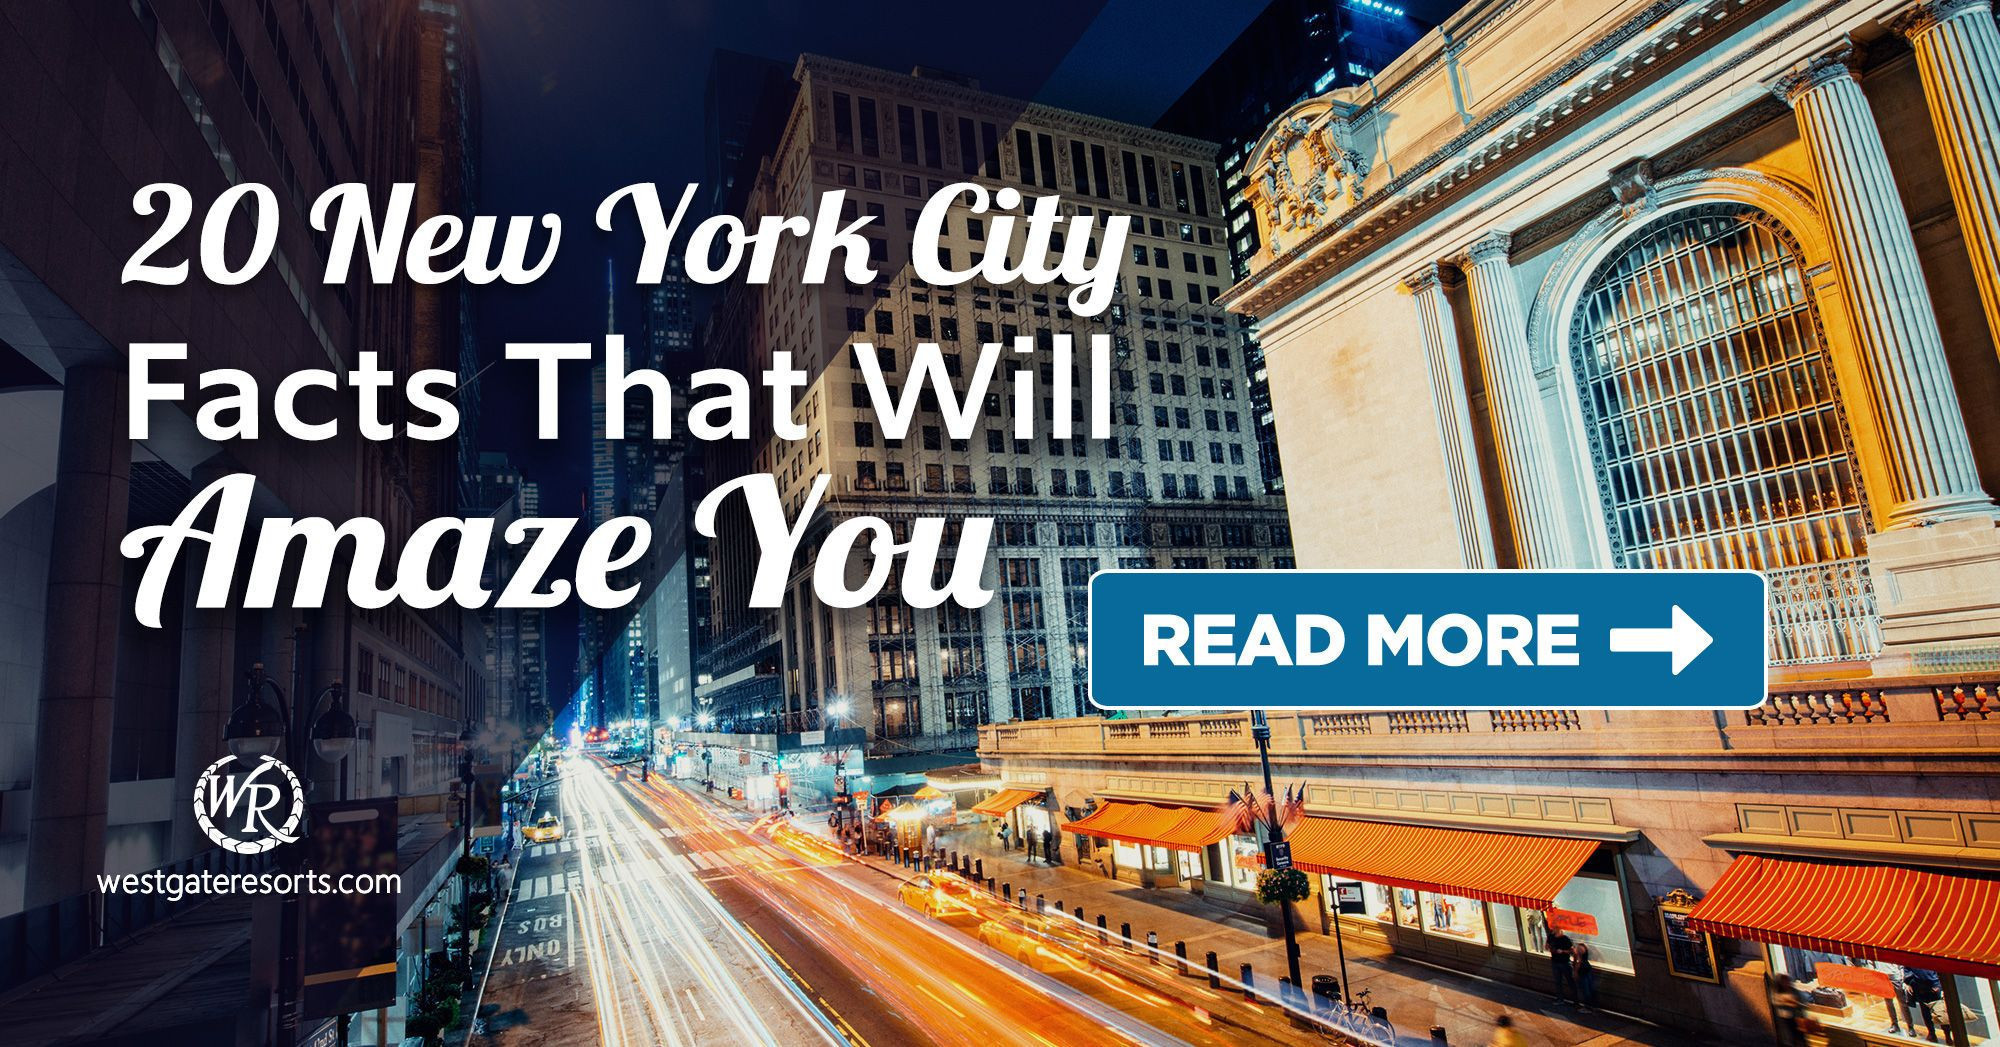 20 New York City Facts That Will Amaze You